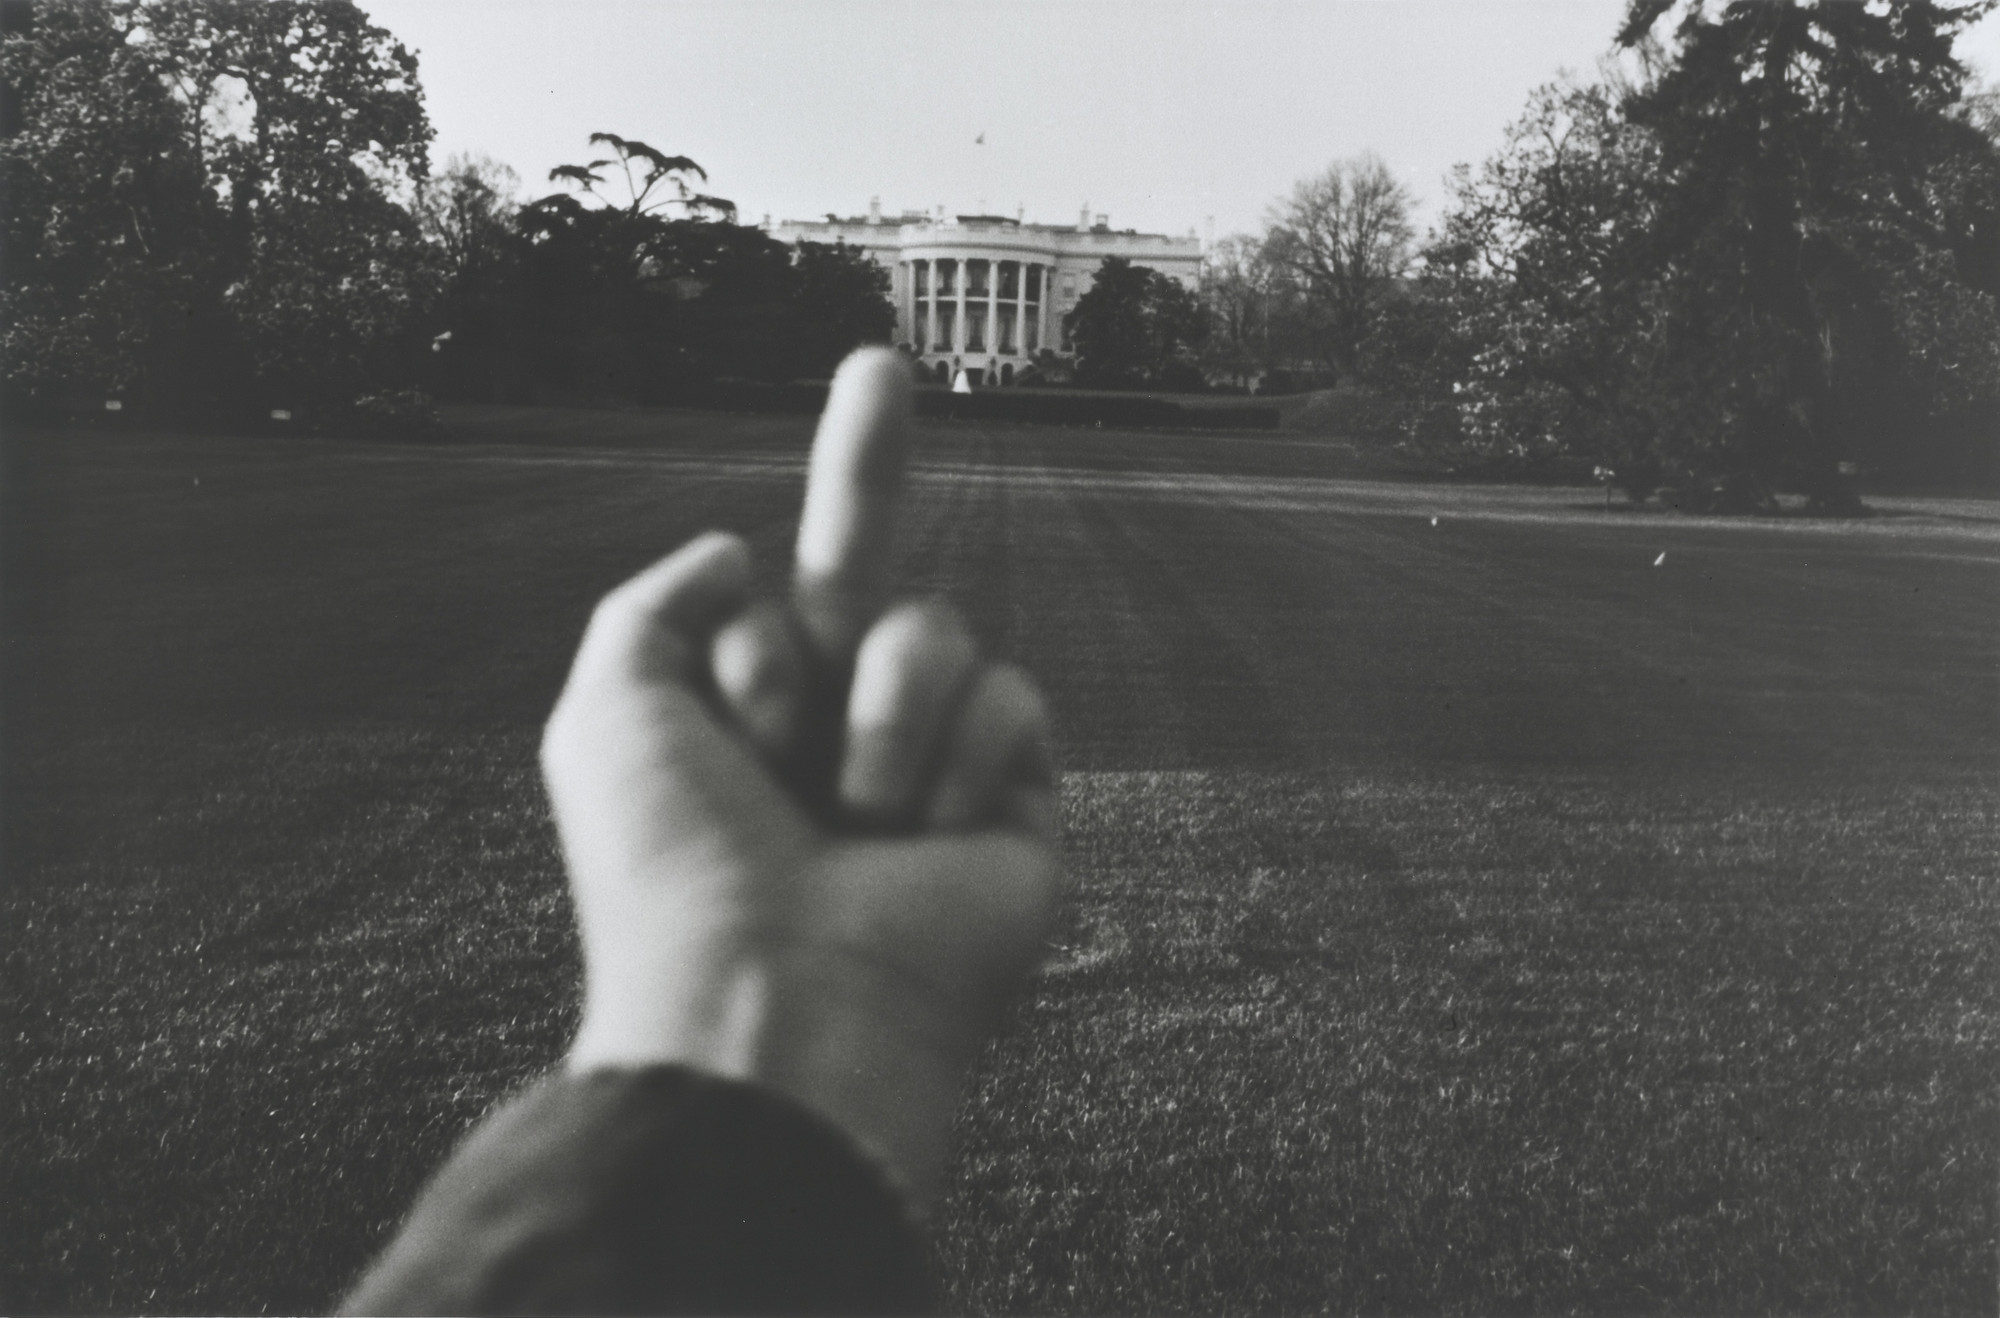 Ai Weiwei. Study of Perspective - White House. 1995-2003